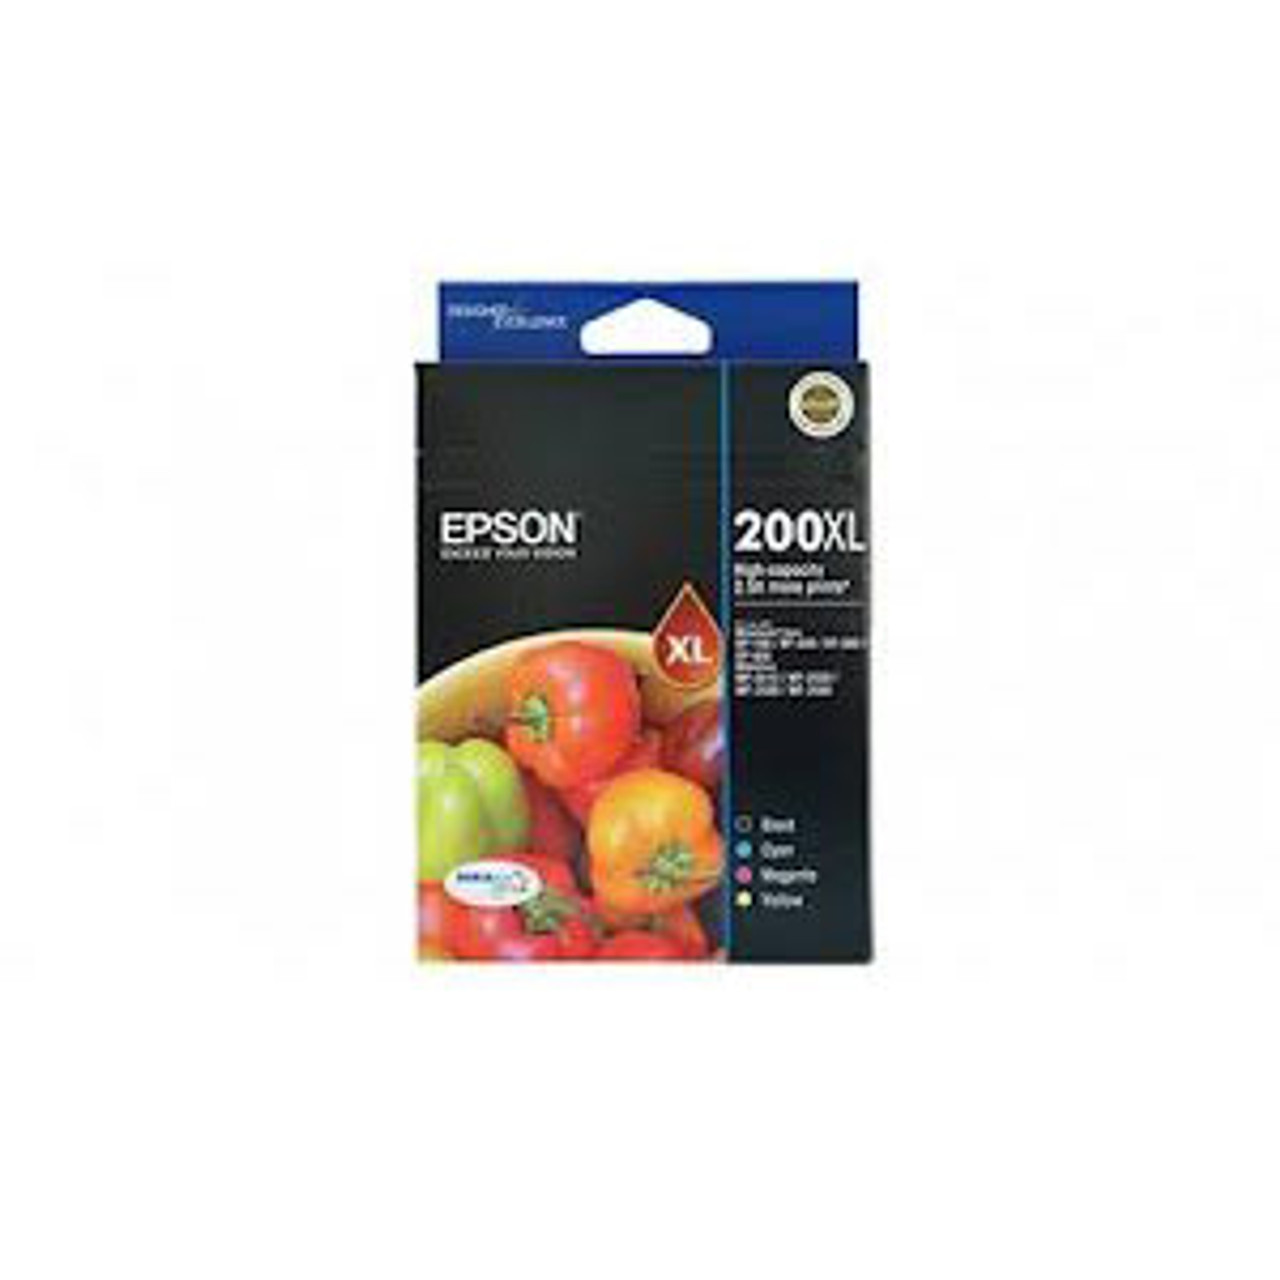 Image for Epson 200 4 HY Ink Value Pack CX Computer Superstore